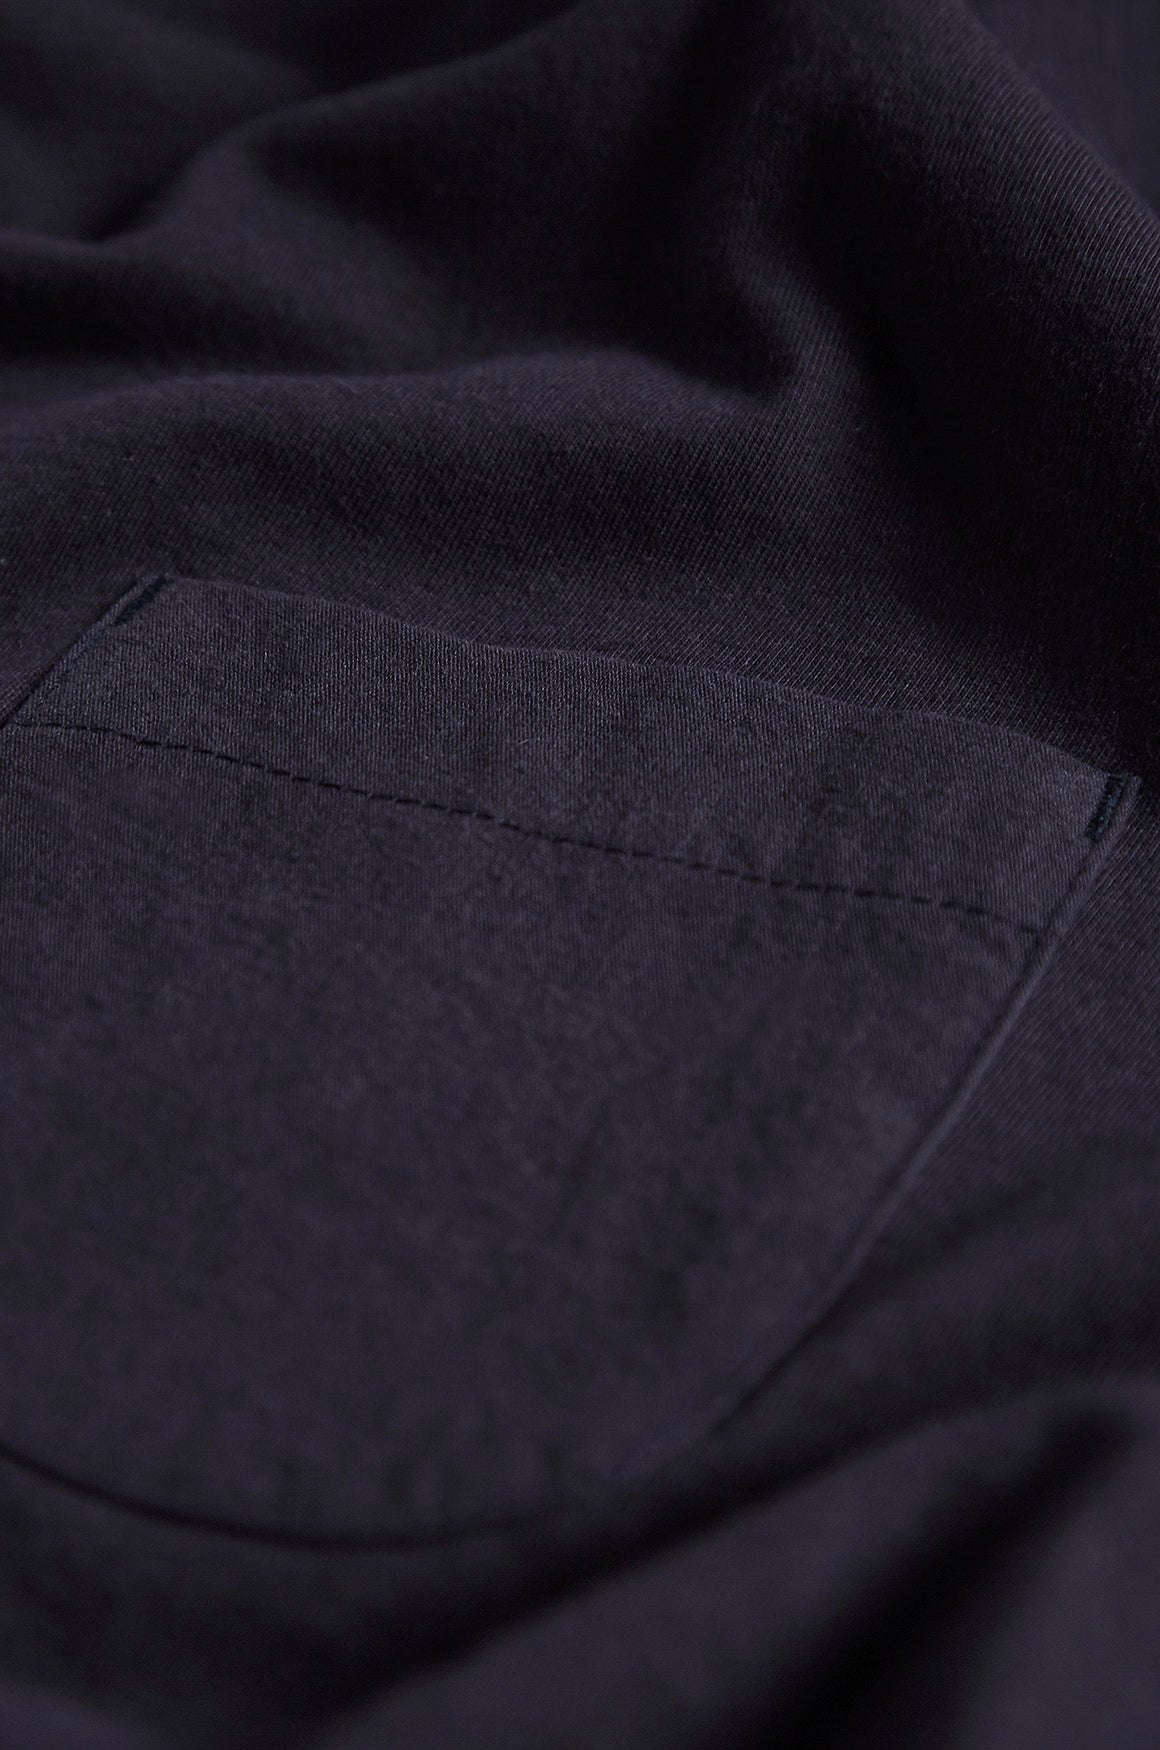 Pocket Tee in Navy - Military PT Sportswear | Realm & Empire Menswear - Army Gym Basics